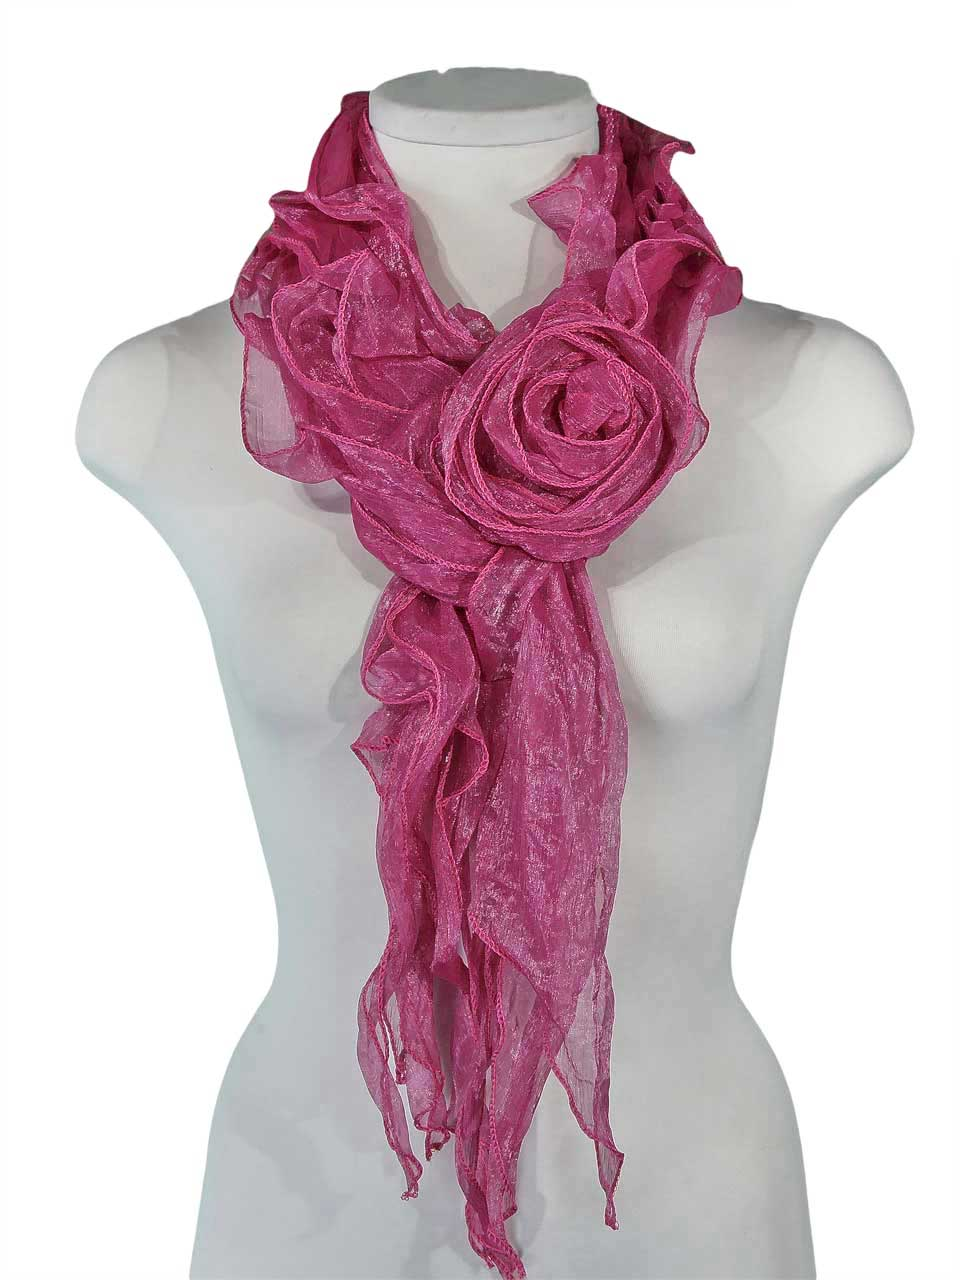 Scarves: Handcrafted women's and men's scarves at NOVICA, in association with National Geographic. Discover extraordinary Alpaca wool and silk batik scarves at incredible prices from talented artisans around the world.